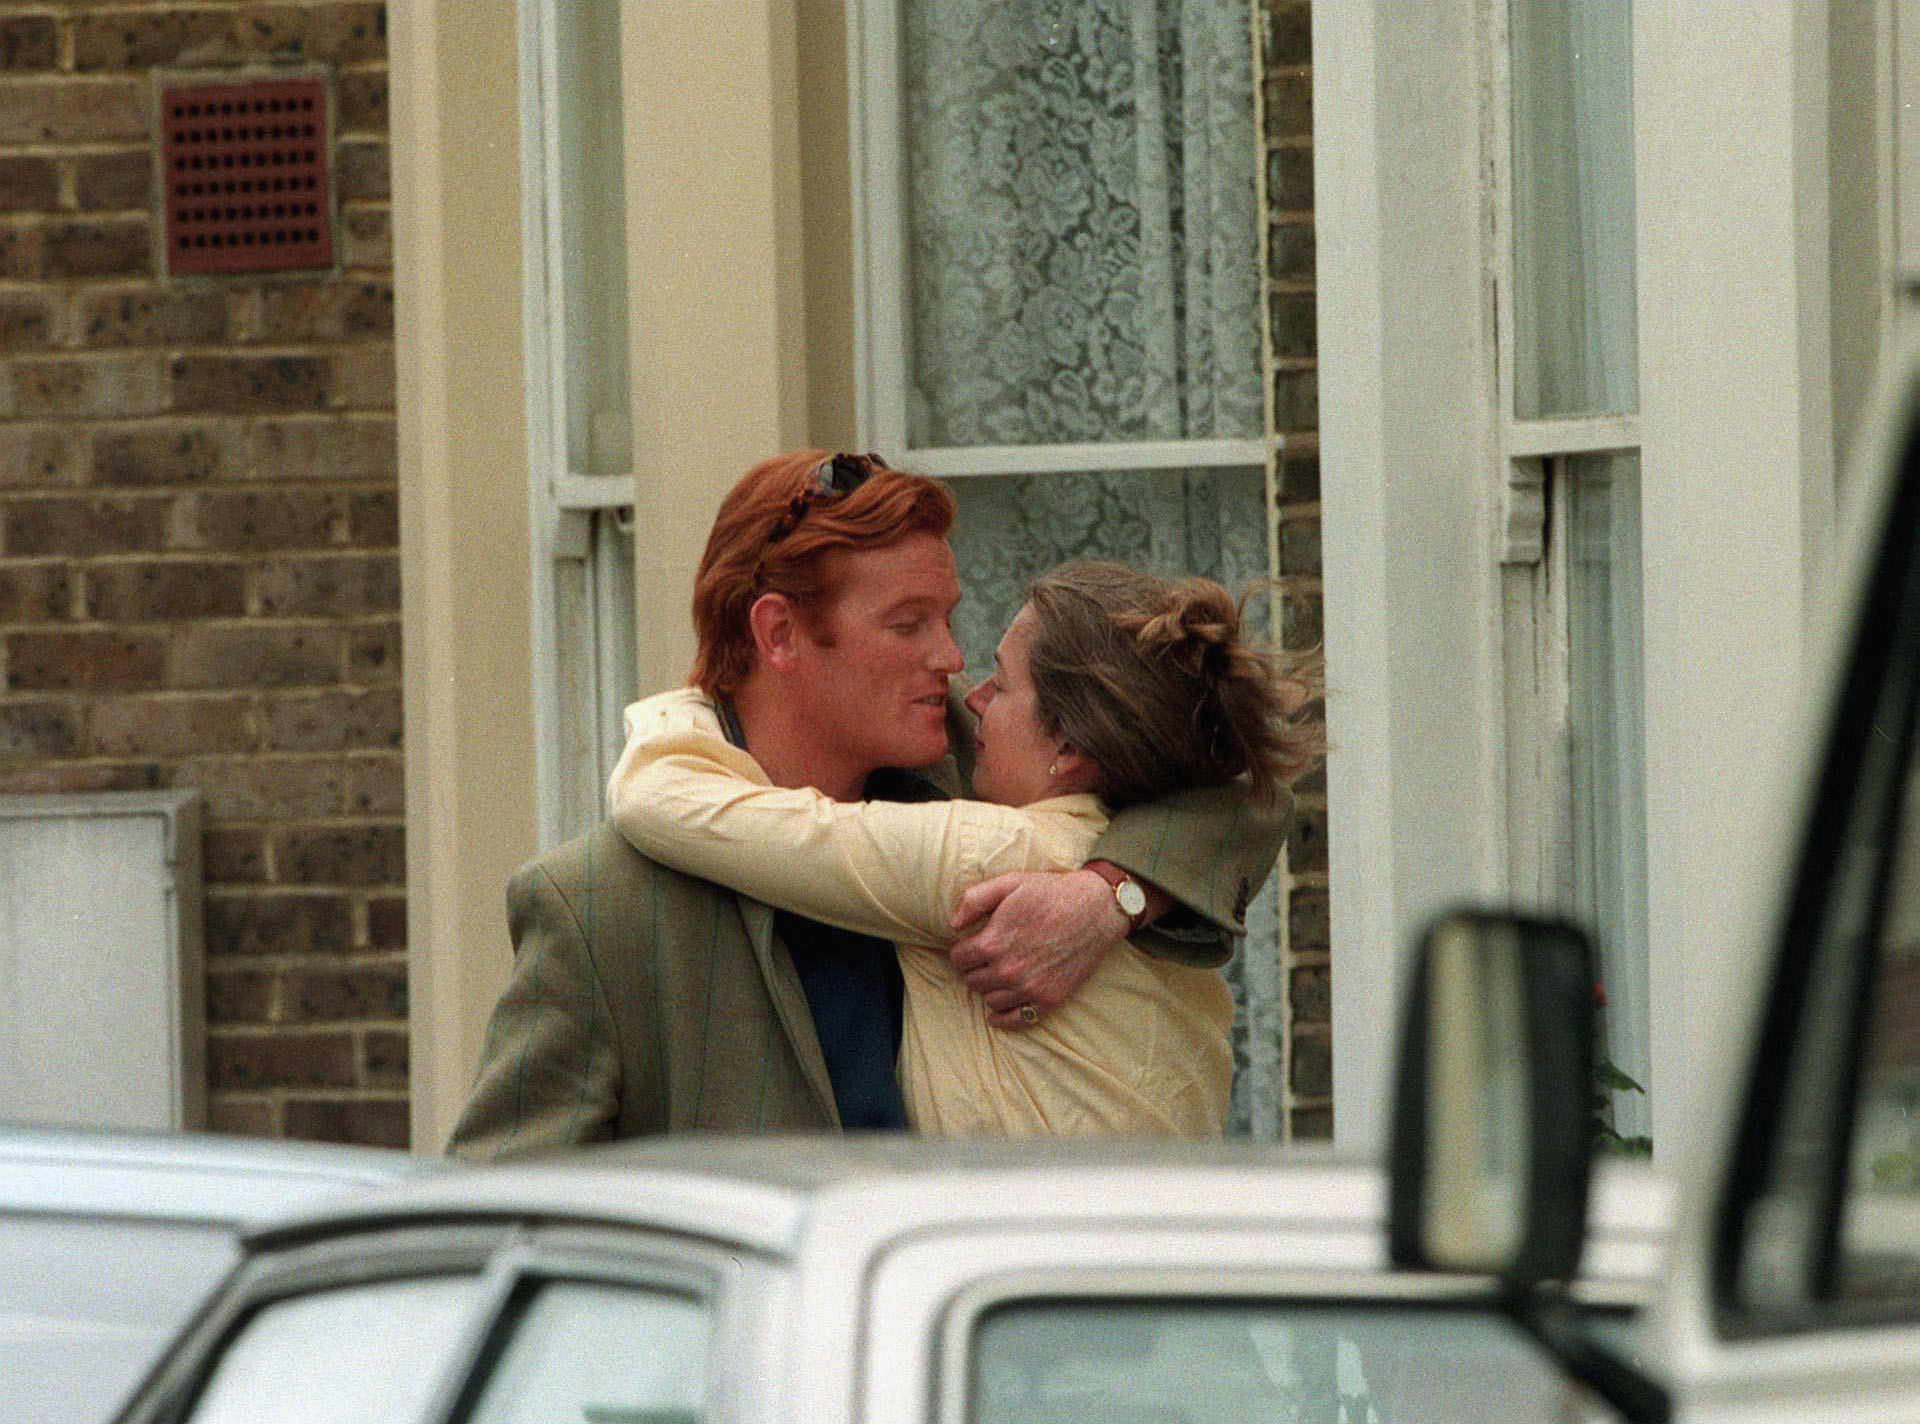 TIGGY LEGGE BOURKE AND MARK DYERTIGGY LEGGE BOURKE WITH MAN FRIEND OUTSIDE HER BATTERSEA HOME, LONDON, BRITAIN - 1997